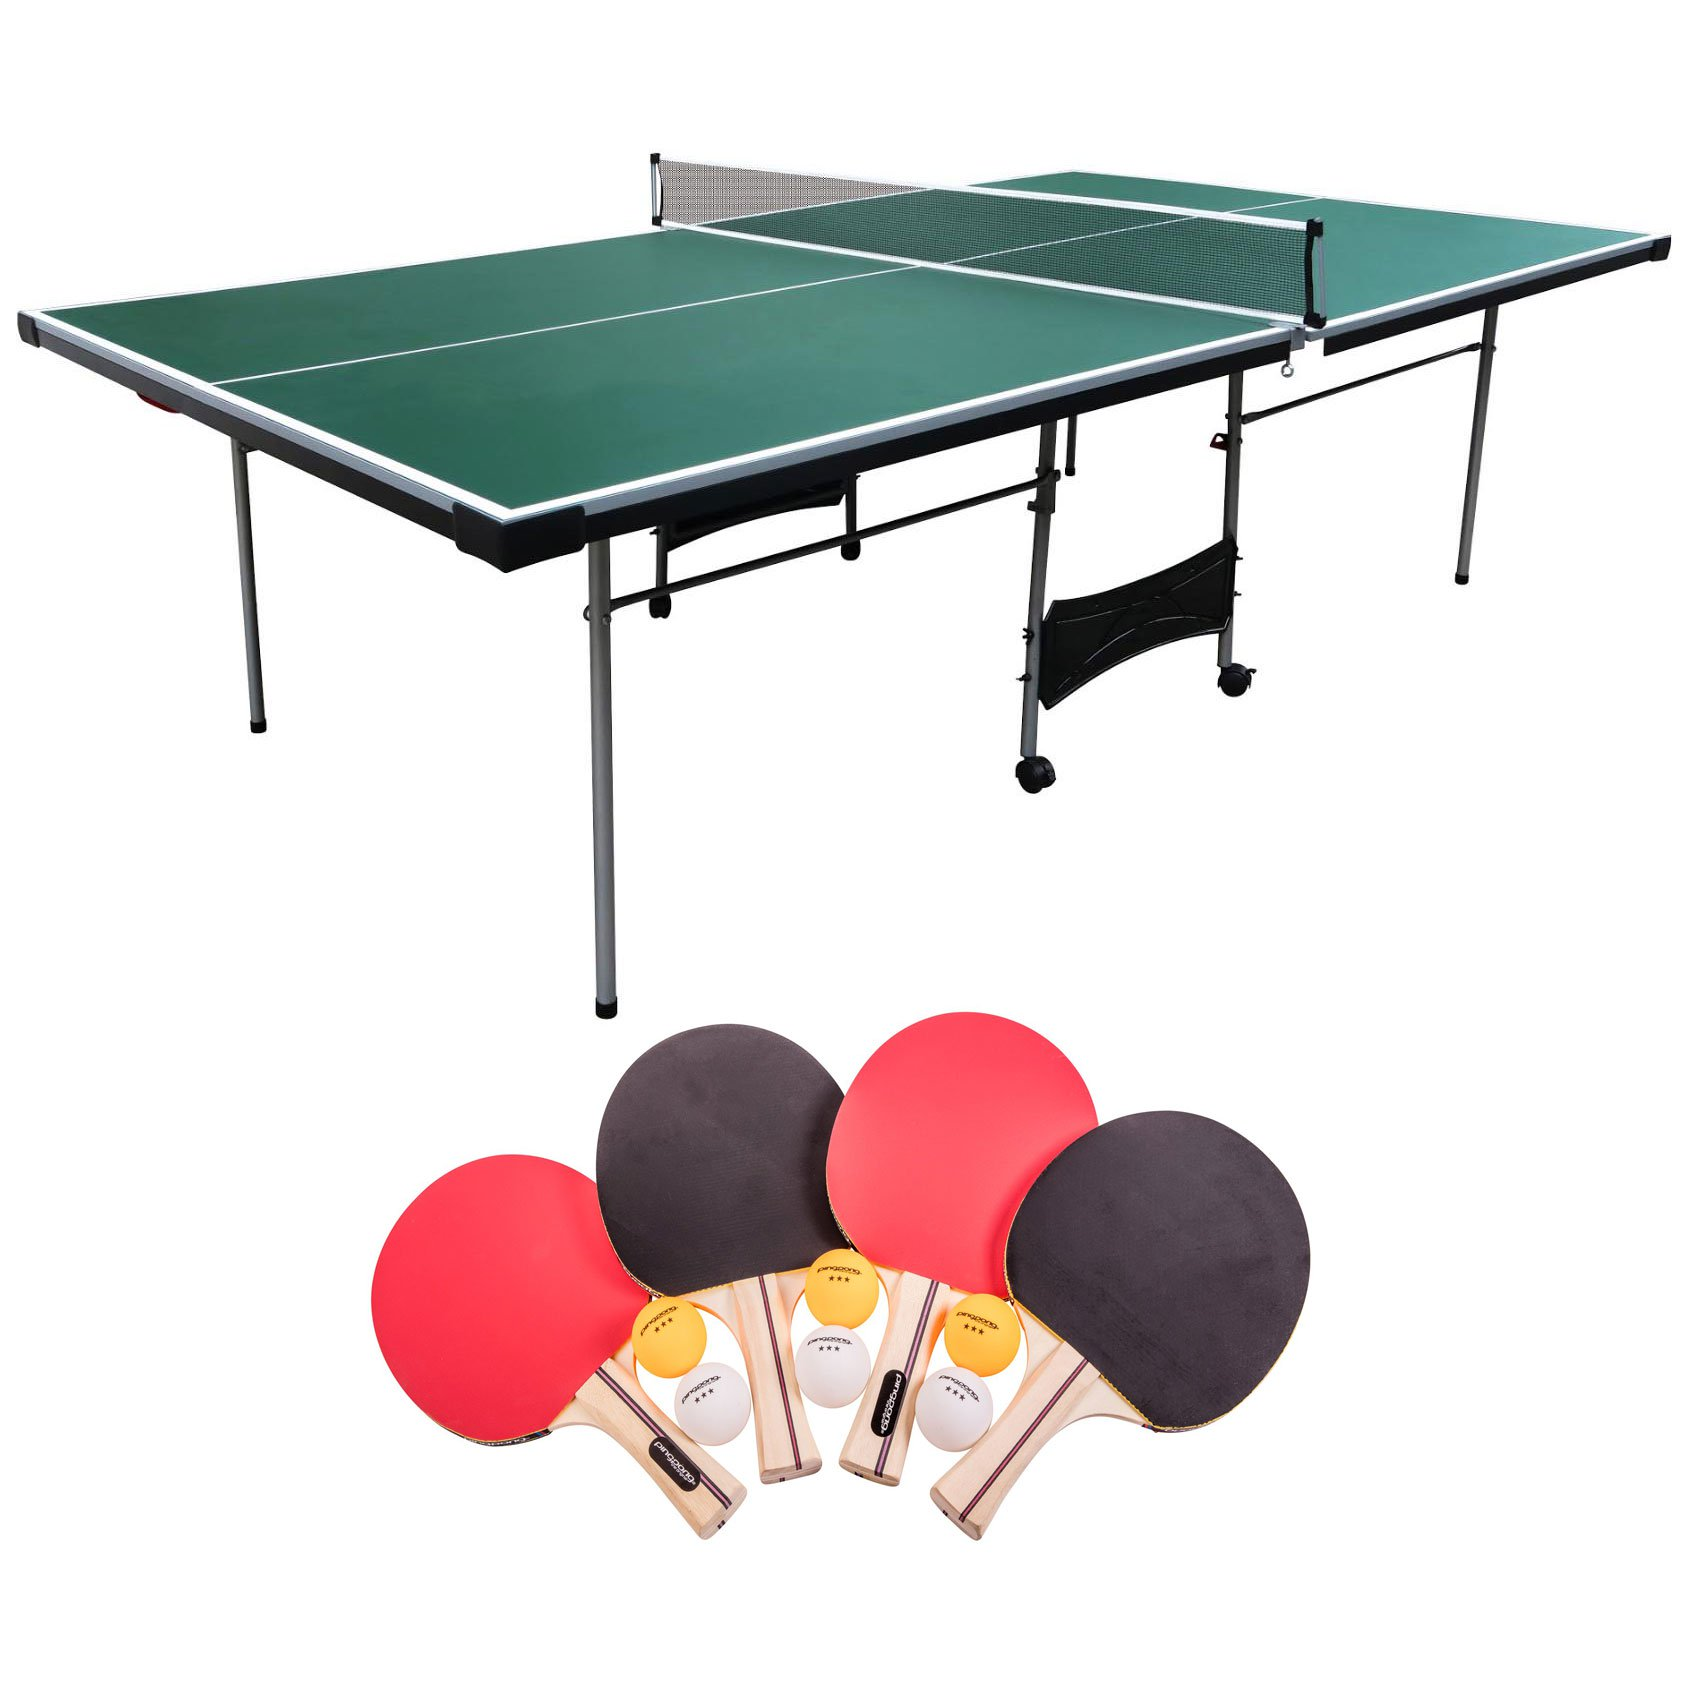 Lancaster 4 Piece Official Size Table Tennis Table w/ 4 Rackets and 6 Balls